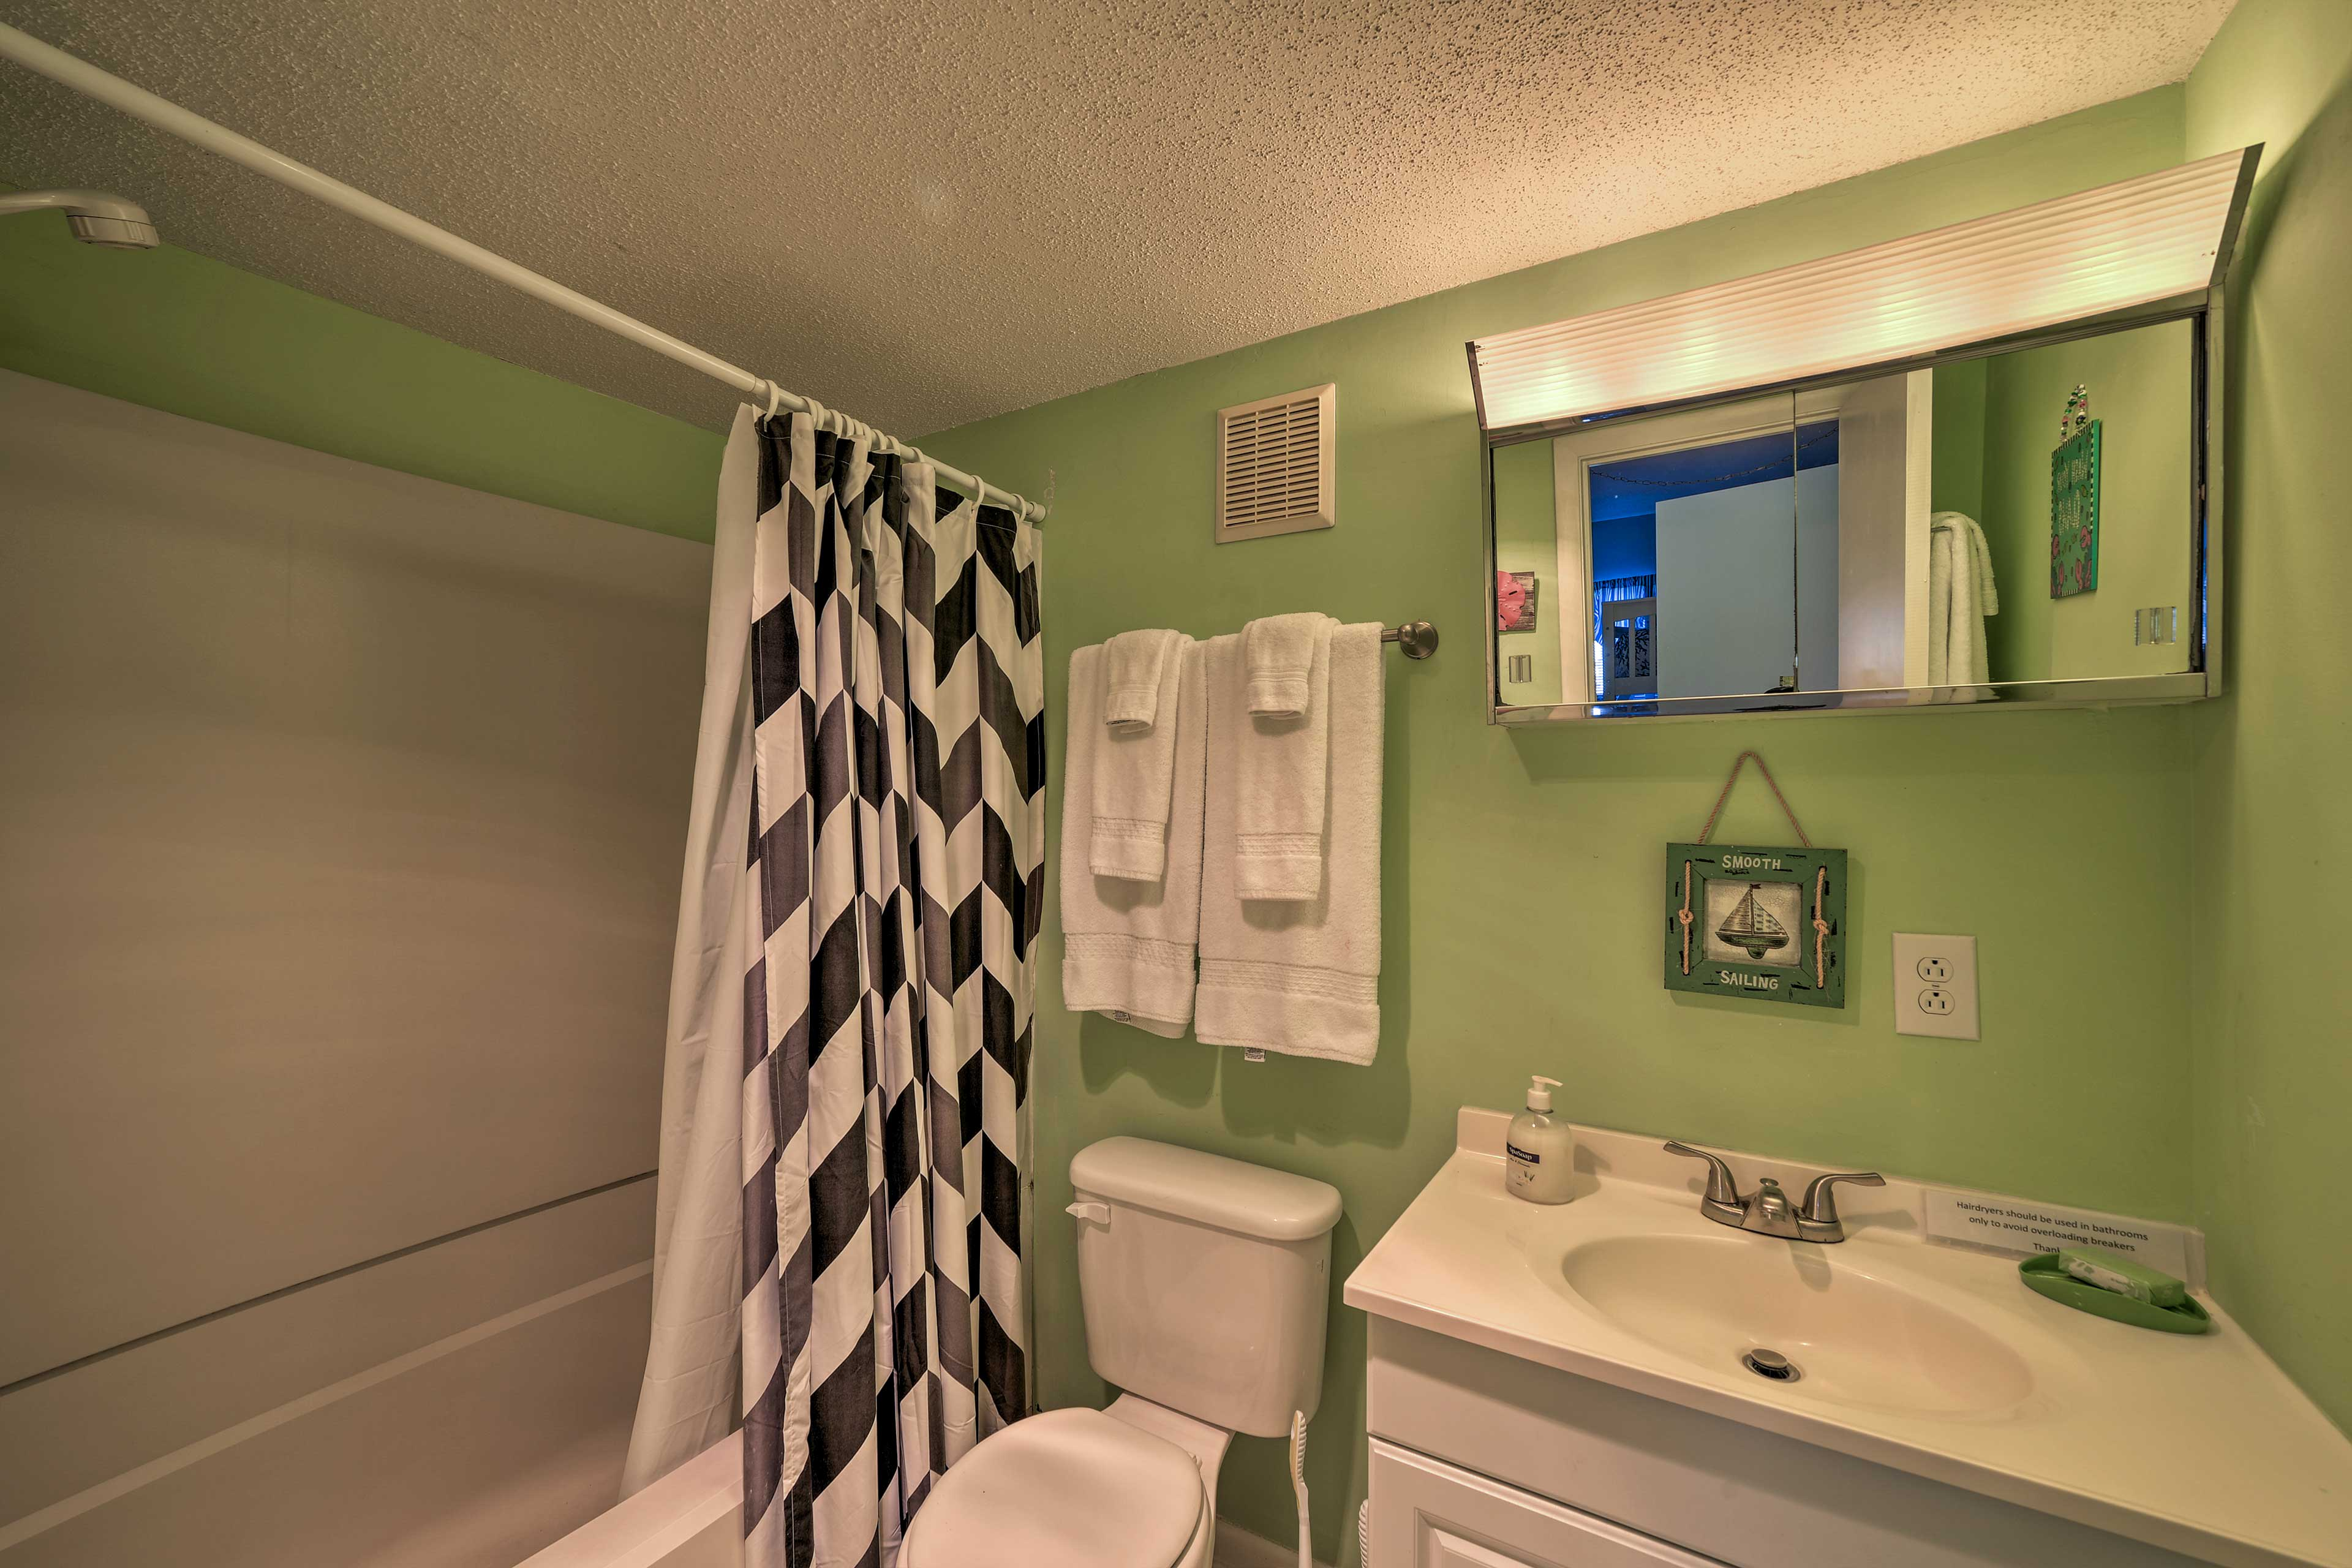 Another full bath w/ shower/tub combo offers space to freshen up.